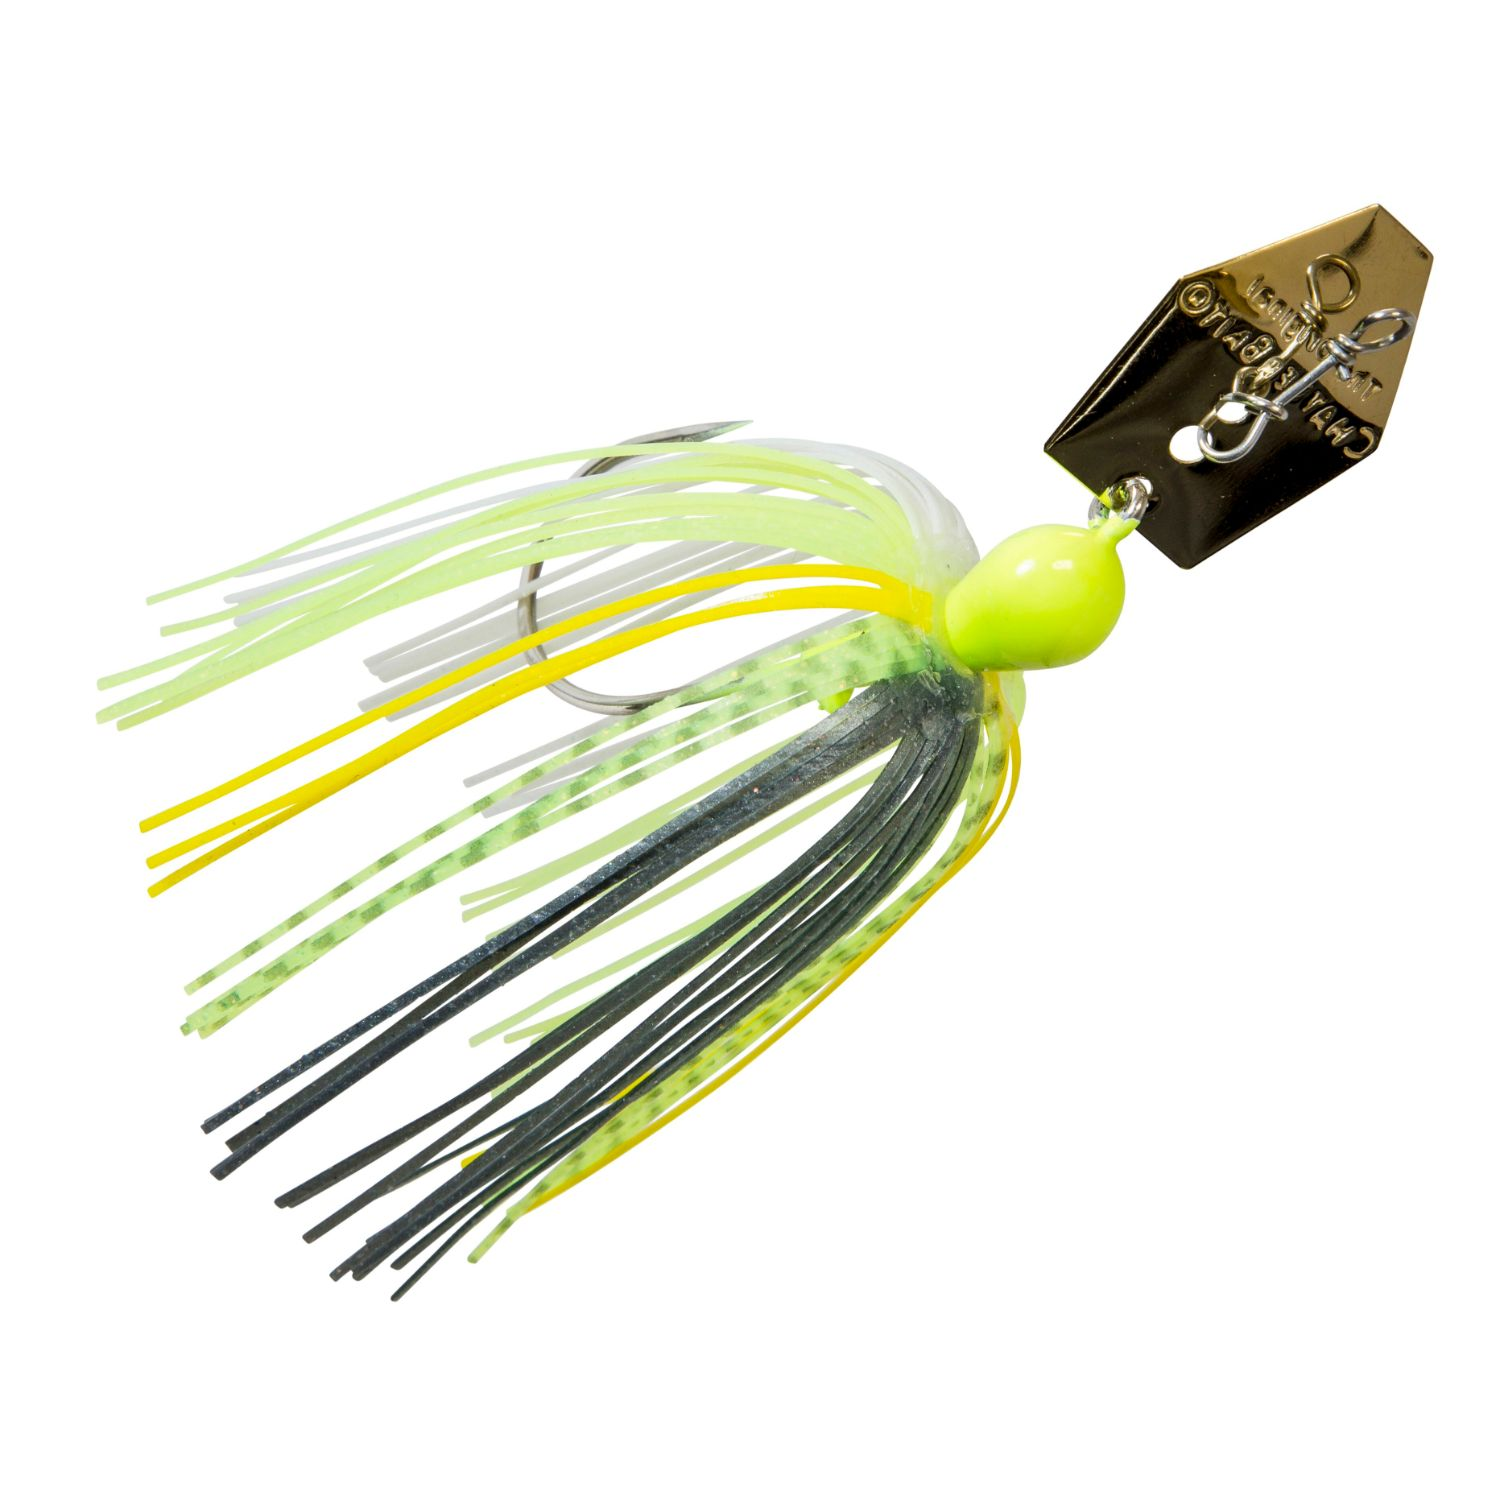 Zman Chatterbait 0.375 Oz-Chartreuse Sexy Shad